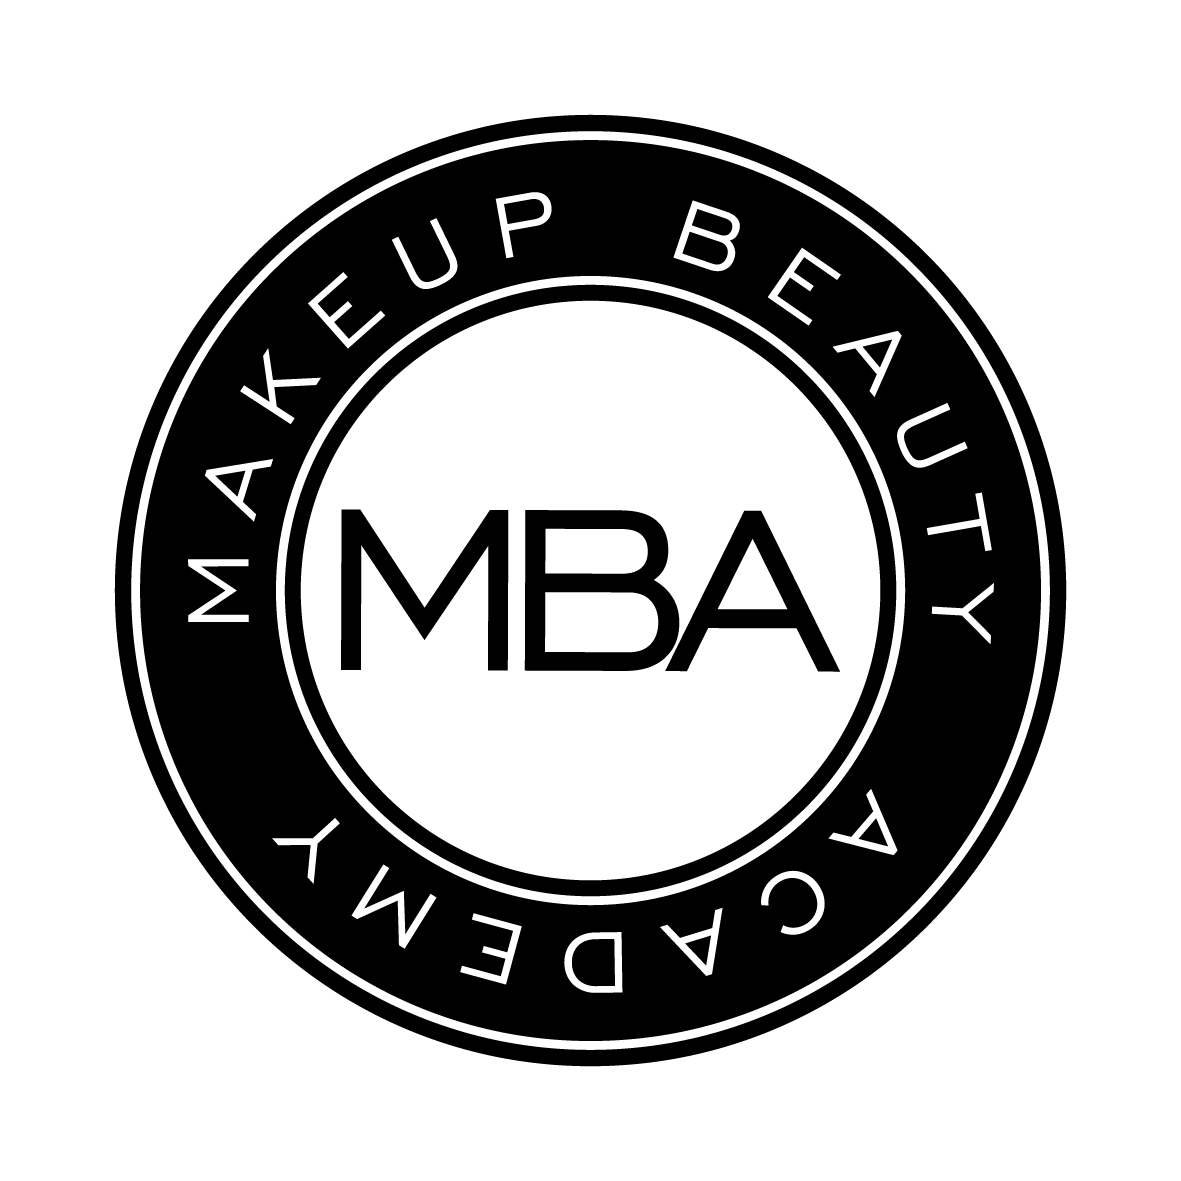 Make-Up Beauty Academy German